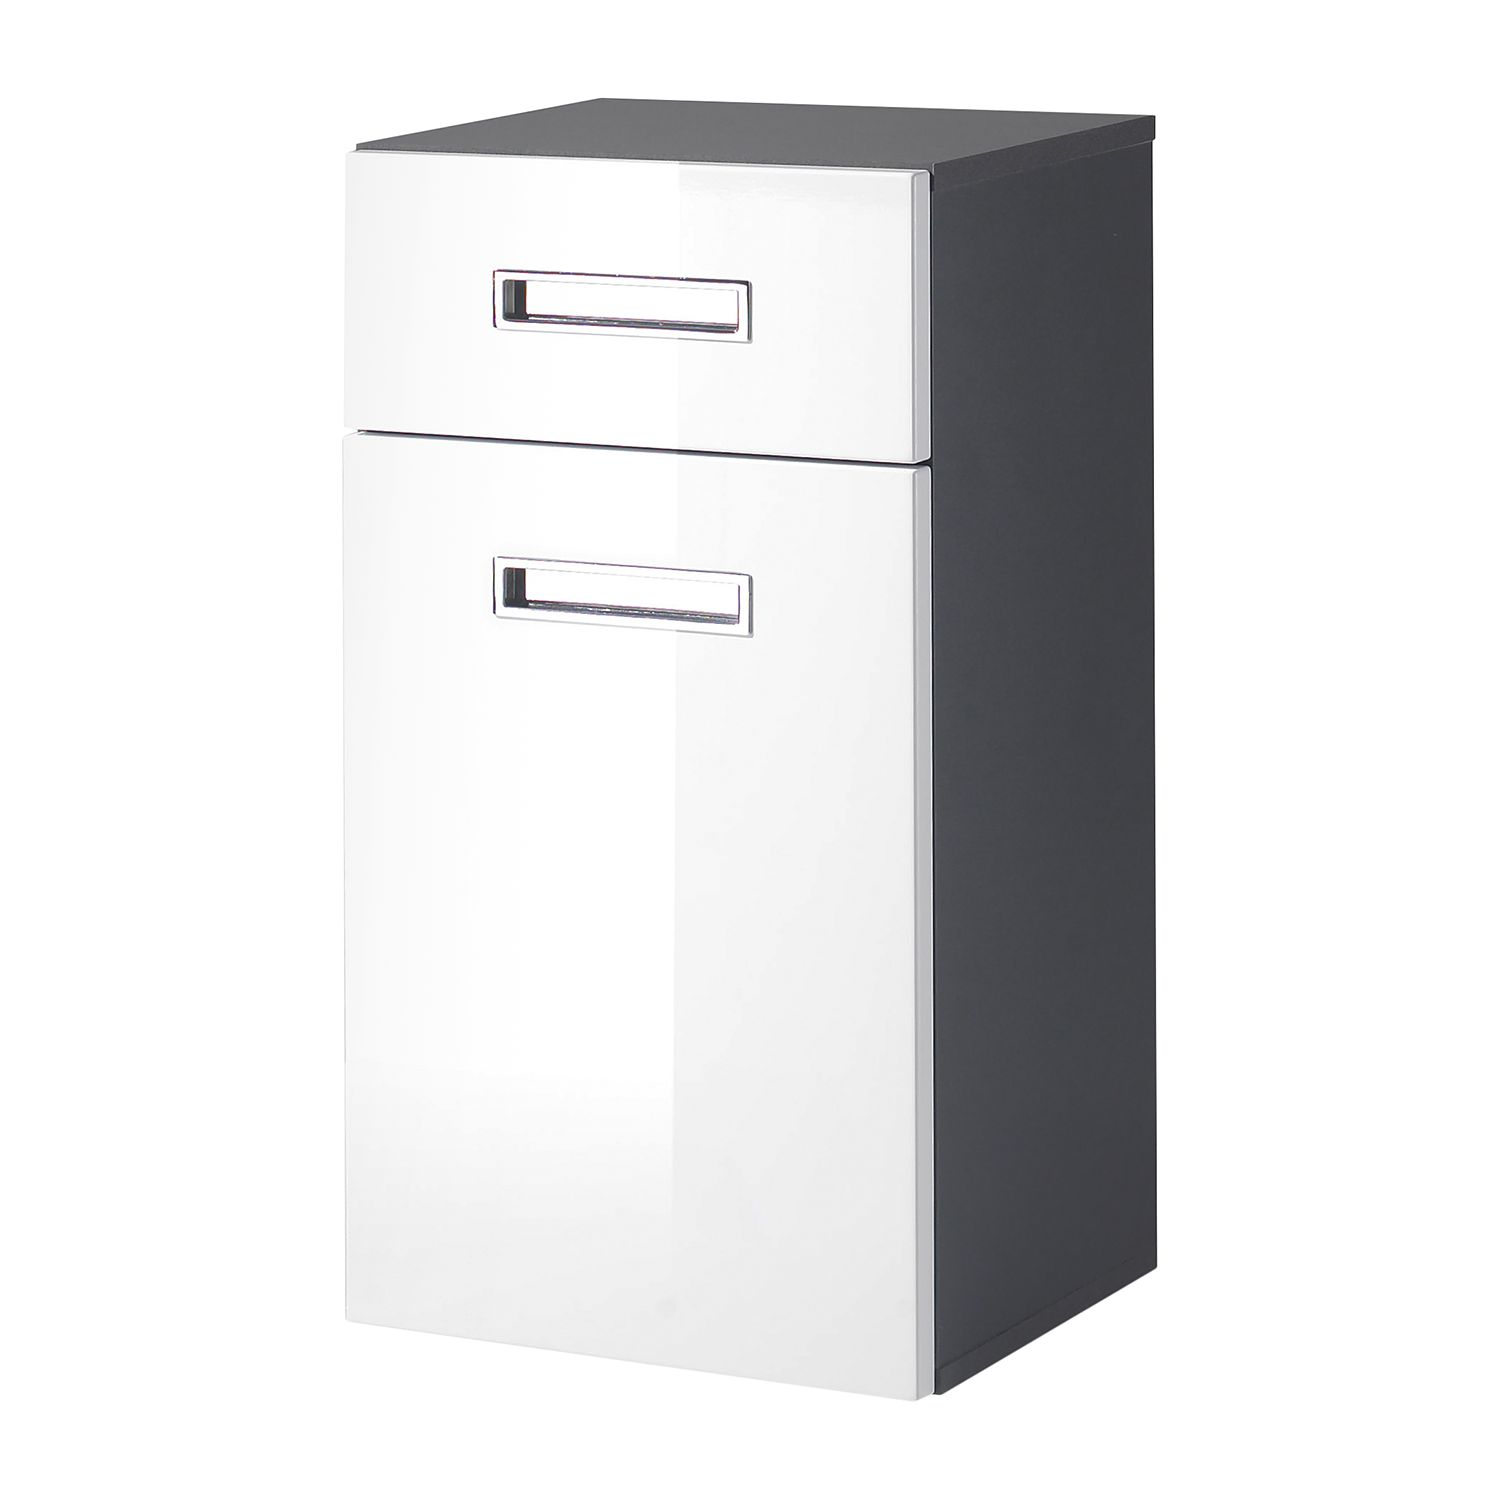 Armoire basse Braddock - Blanc brillant / Anthracite, mooved